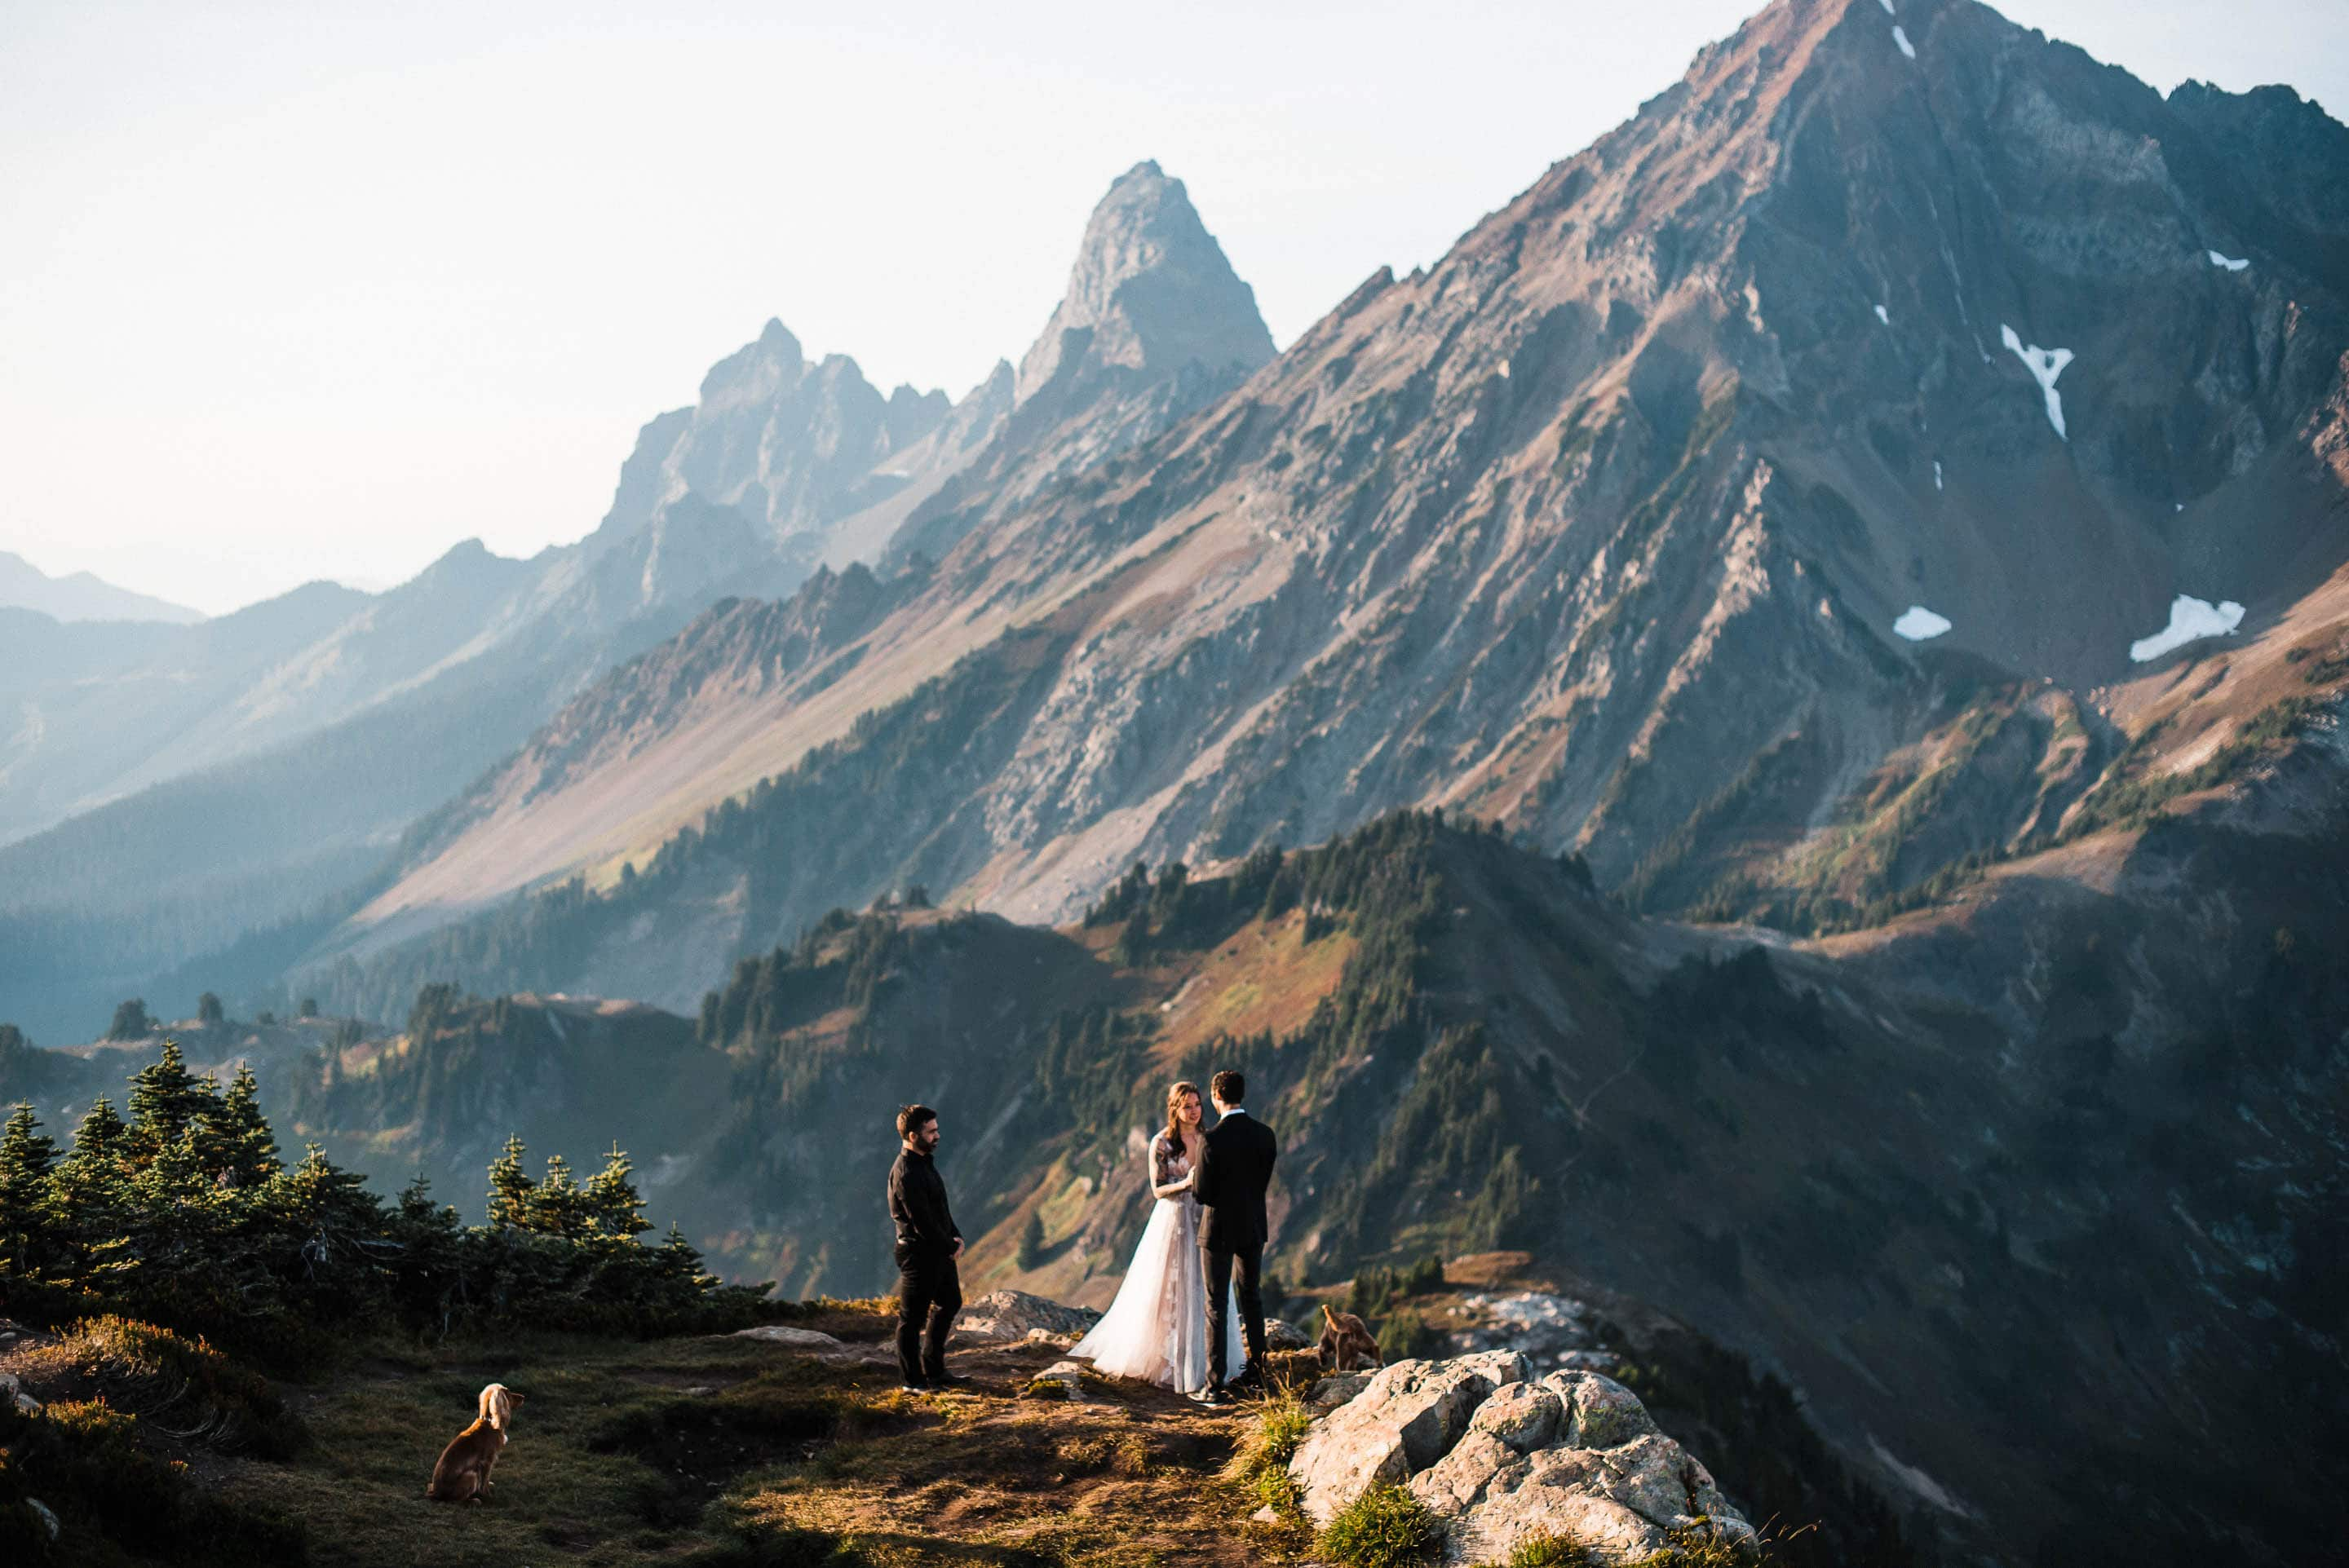 Thea_Lucas_North_Cascades_Elopement_The_Foxes_Photography_093Fox harsh_50mm_f2.5-2000_ISO100_One click